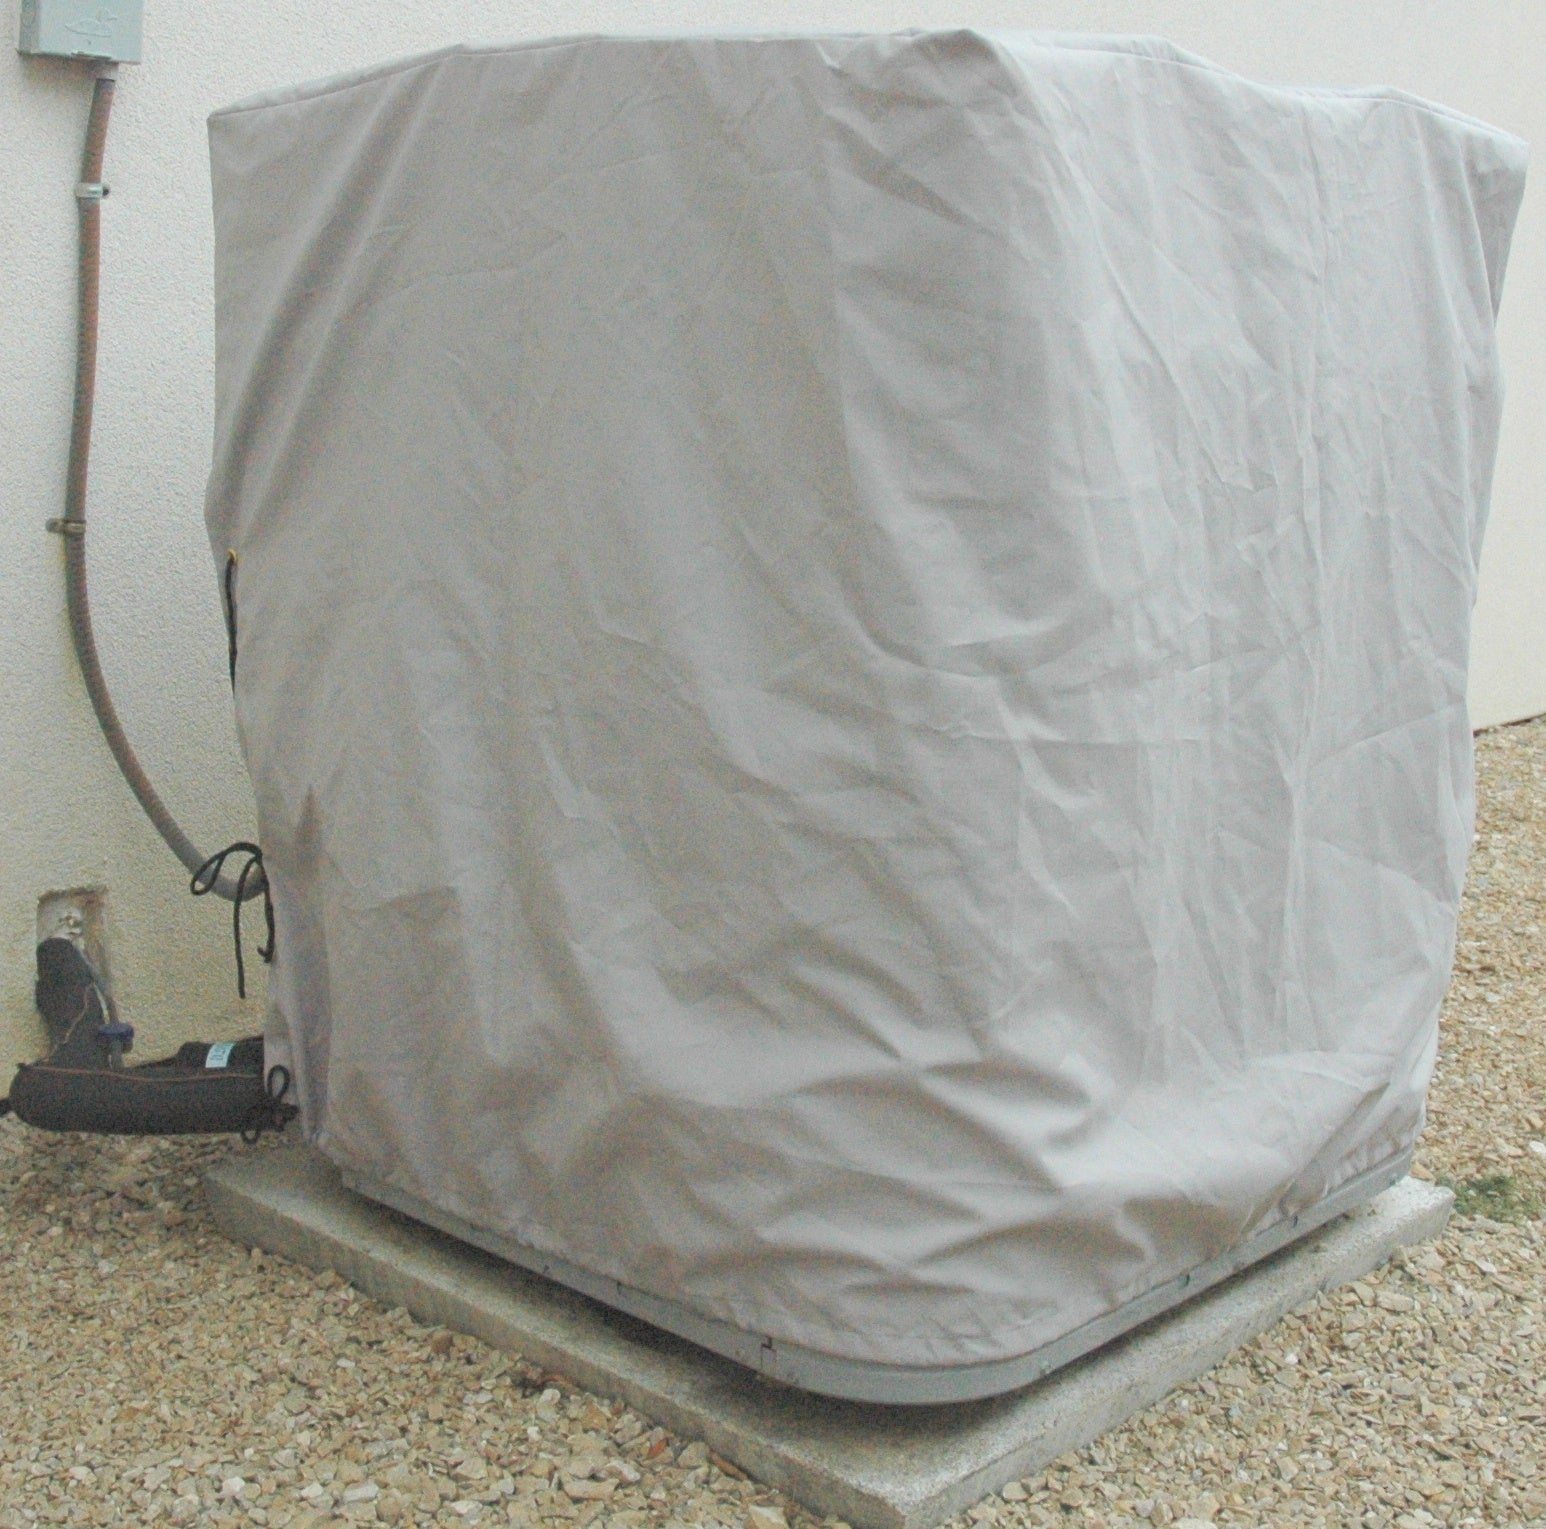 "Evaporative Cooler Cover 37""x37""x42"" Down Draft Pack of 1"